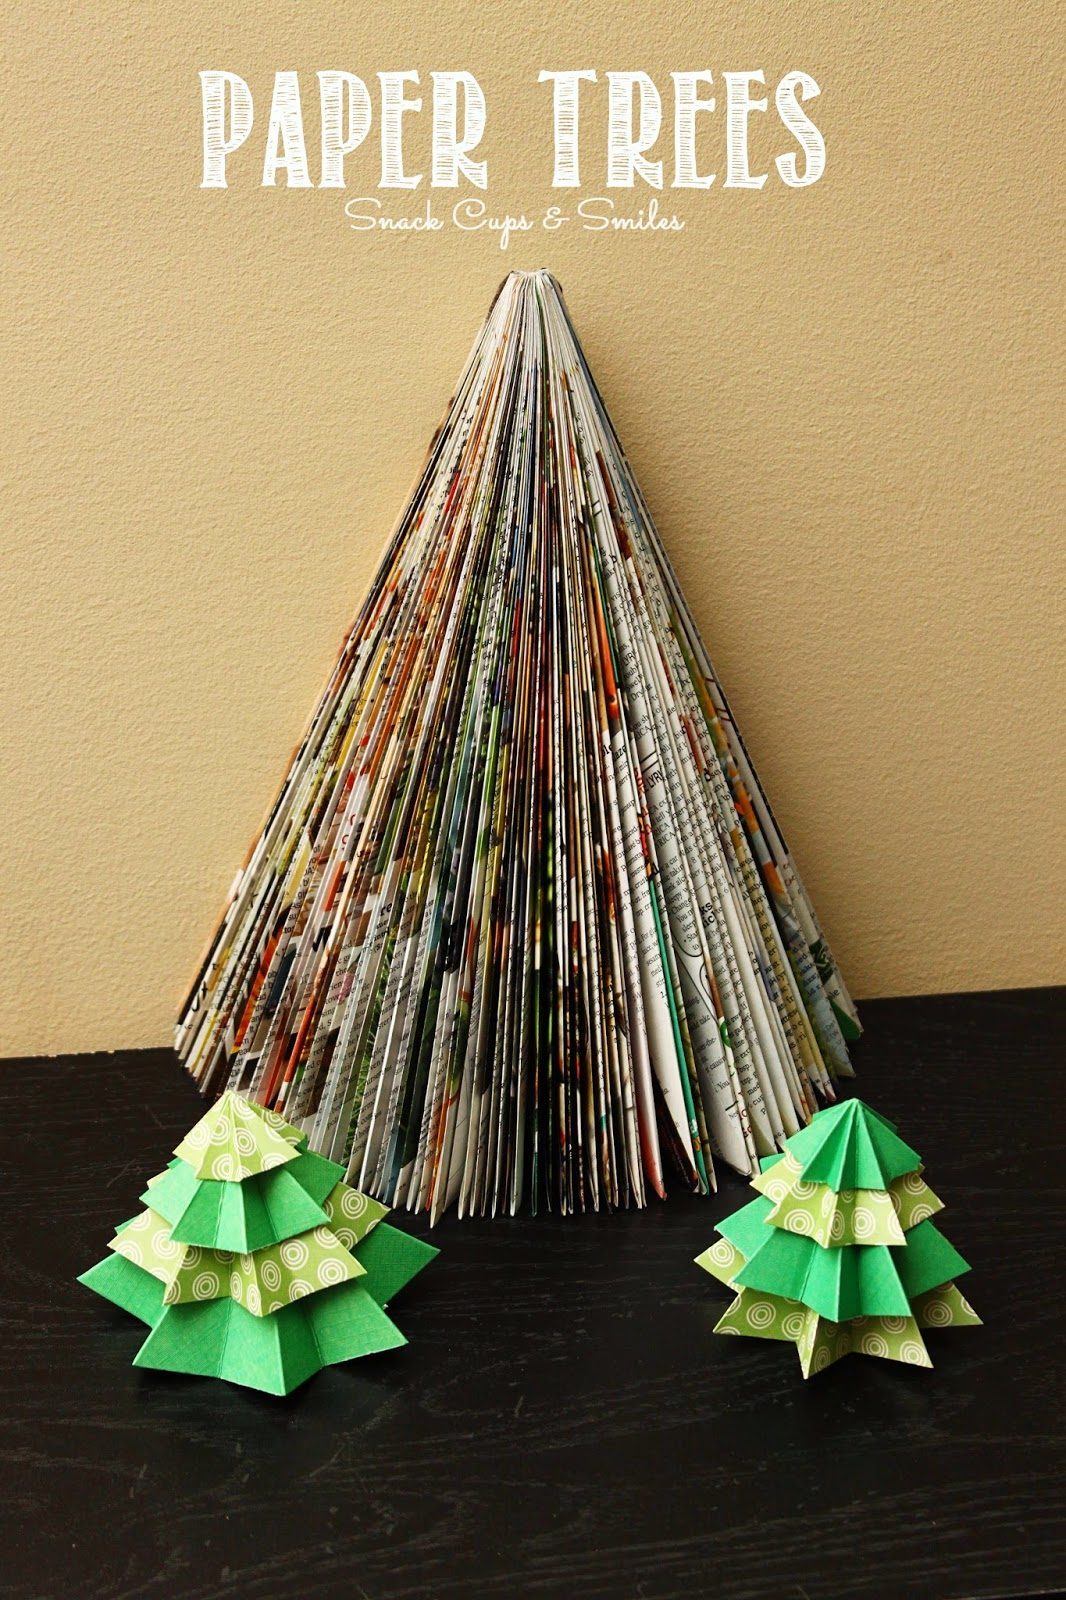 #papercrafts #papertrees #paper #trees #holidaydecorating #crafts #holidayideas